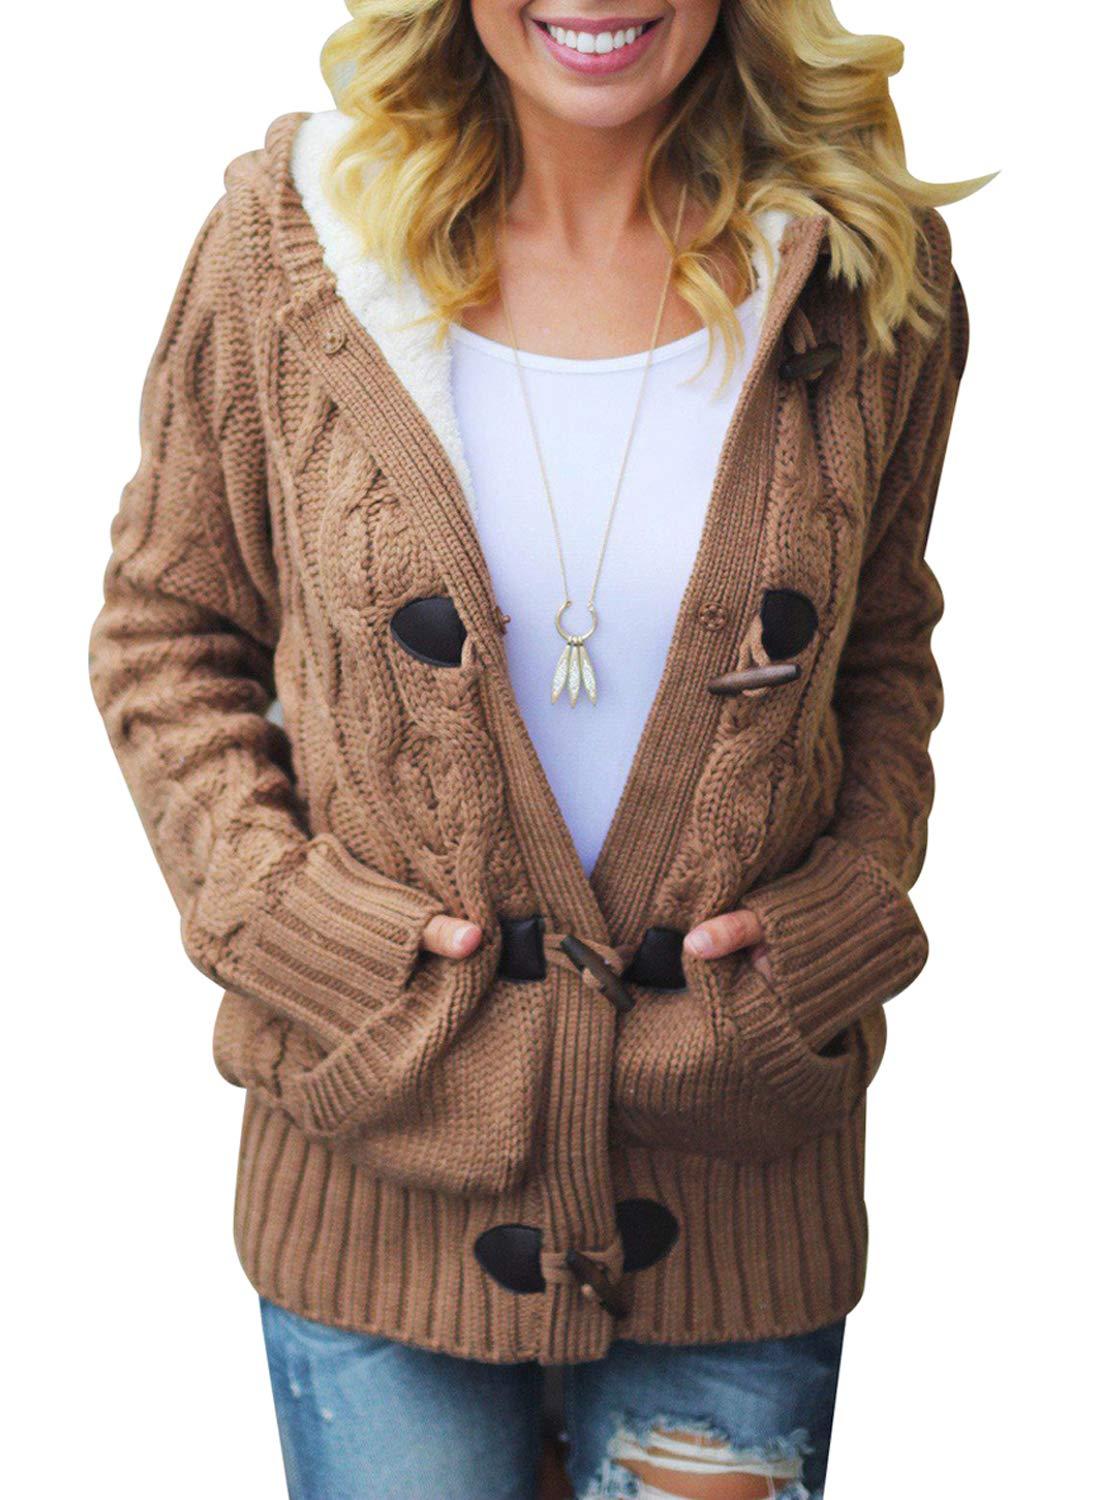 Aleumdr Womens Warm Button Up Knit Hooded Sweater with Pockets Cardigans Pullover Outwear CH27967